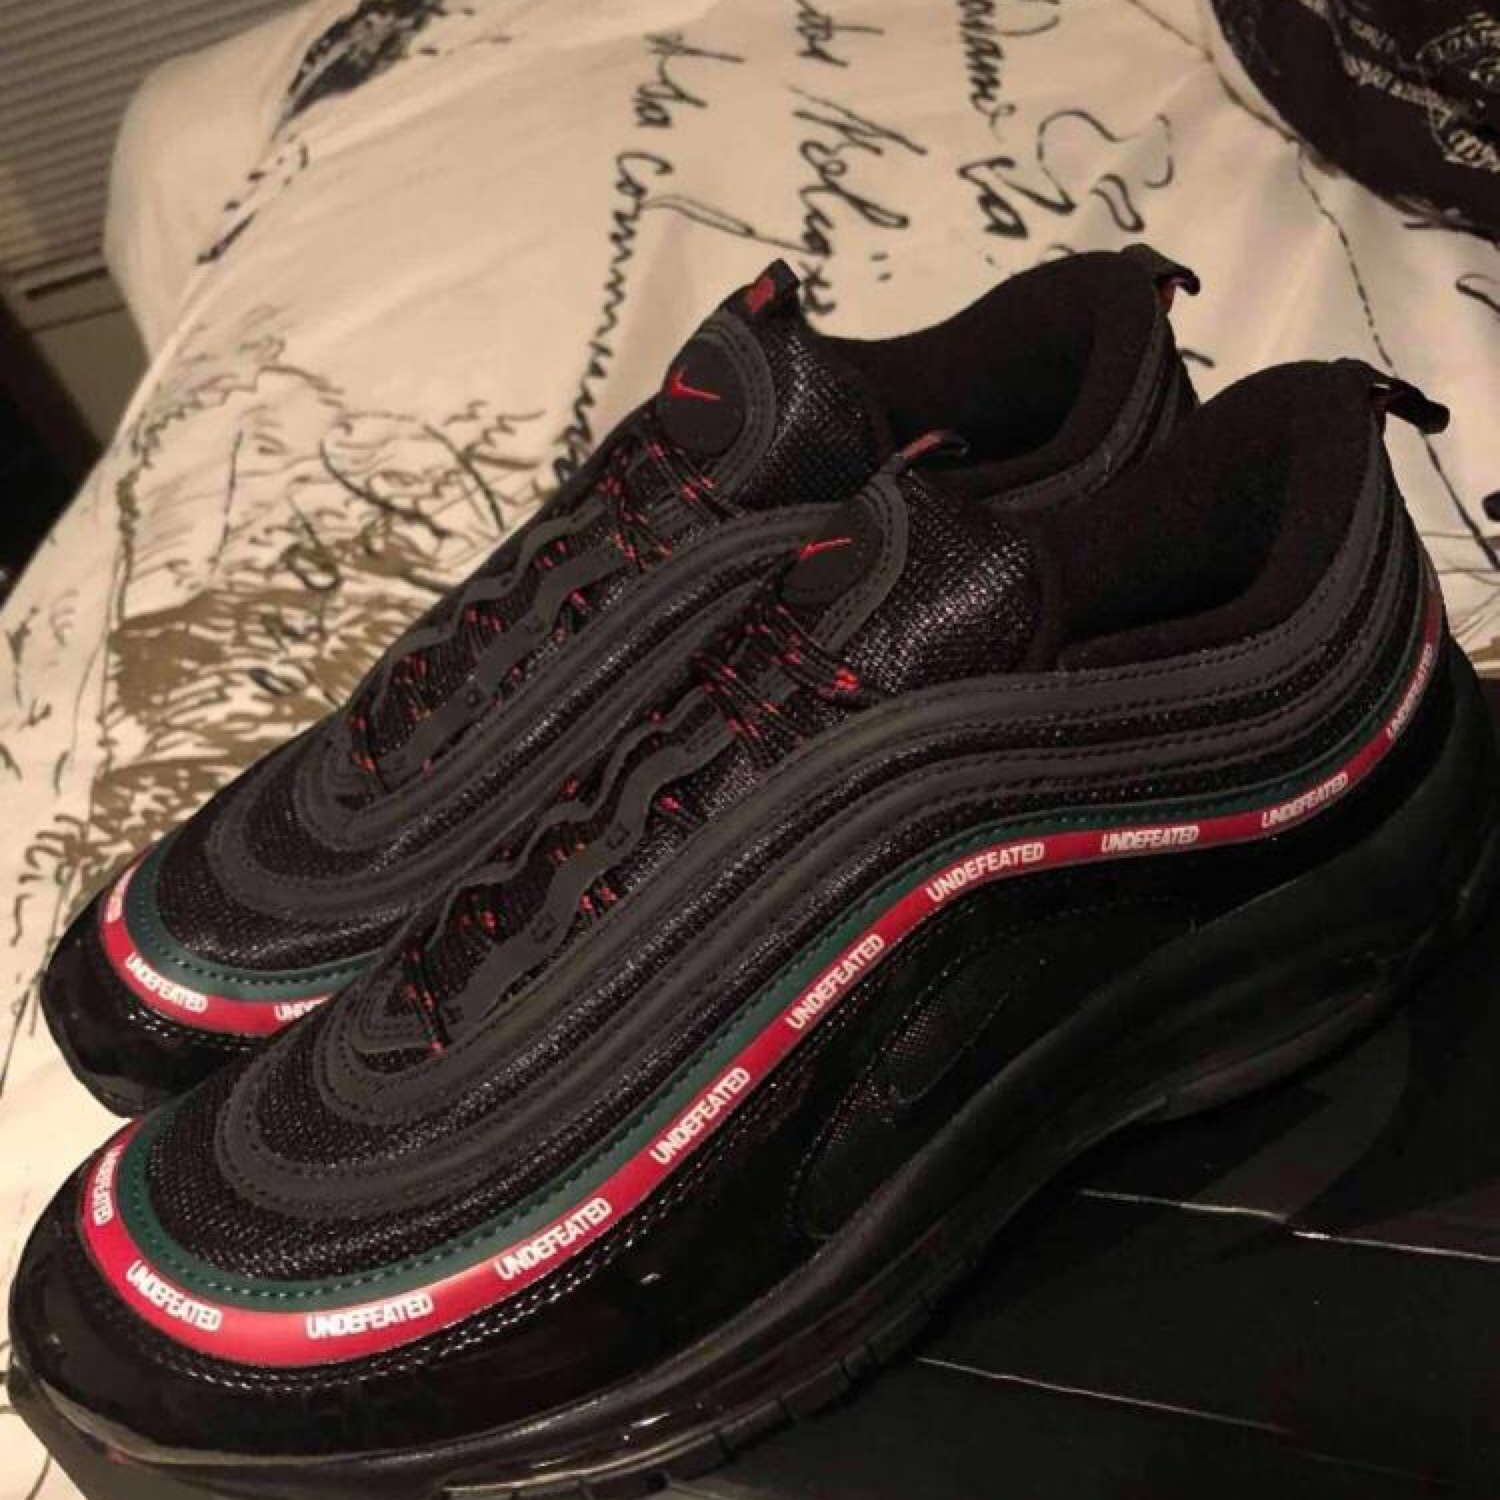 premium selection 4dbf4 424d7 Nike Undefeated 97S